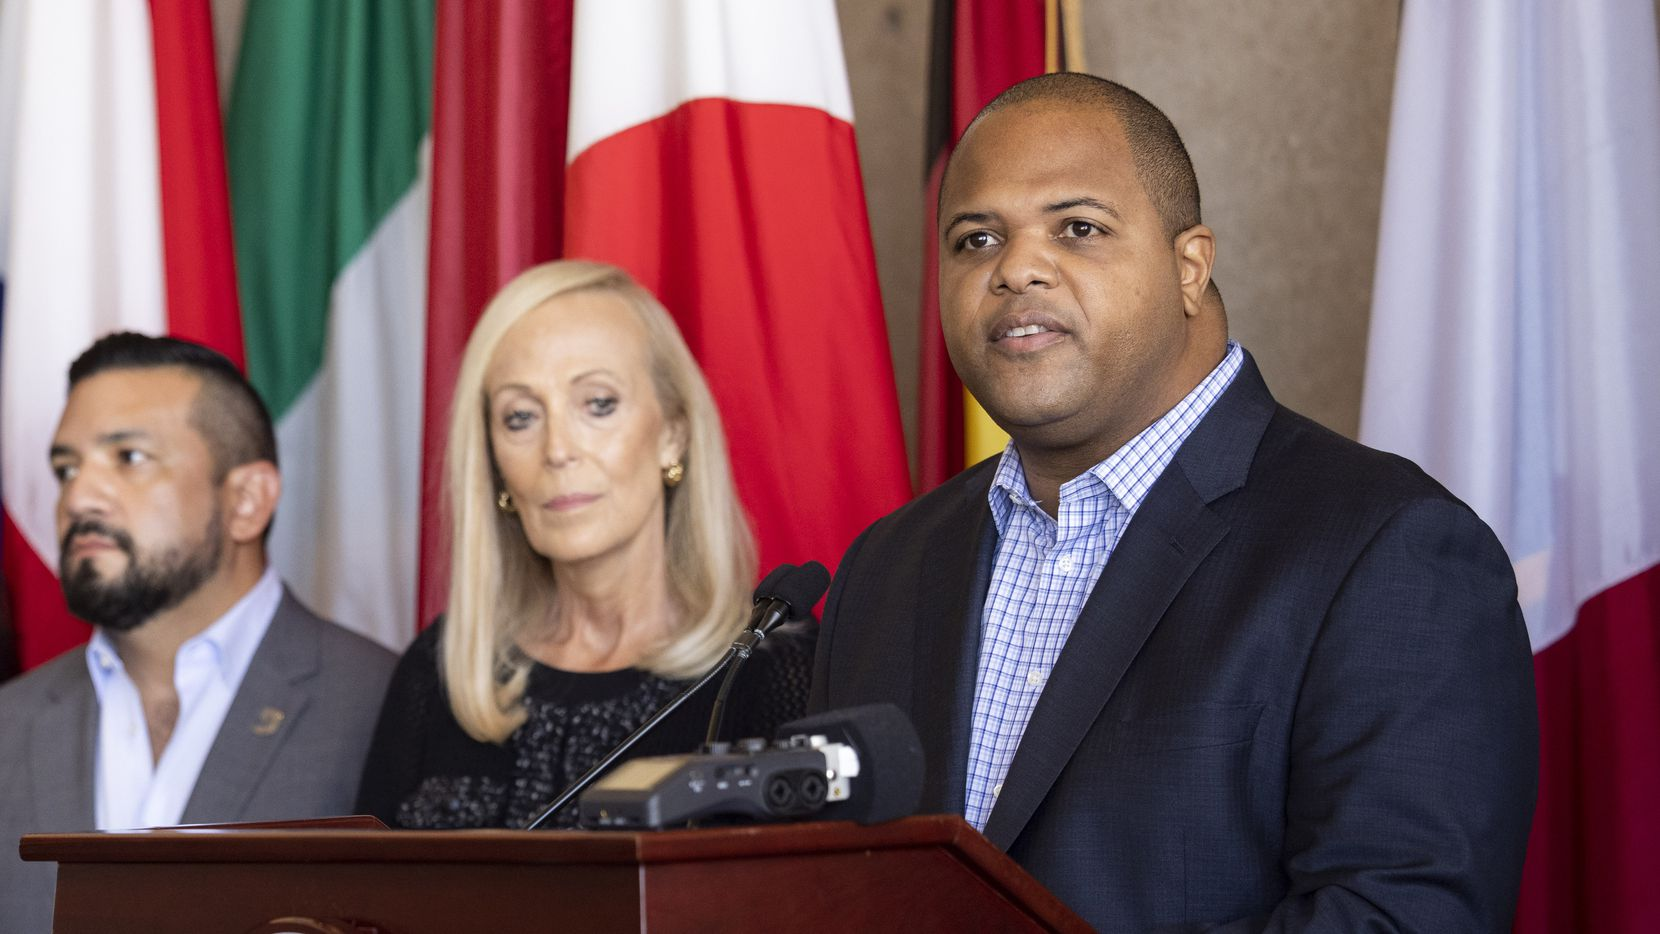 Mayor Eric Johnson speaks about the creation of his Anti-Hate Advisory Council on Wednesday, Sept. 15, 2021, at City Hall in Dallas. (Juan Figueroa/The Dallas Morning News)